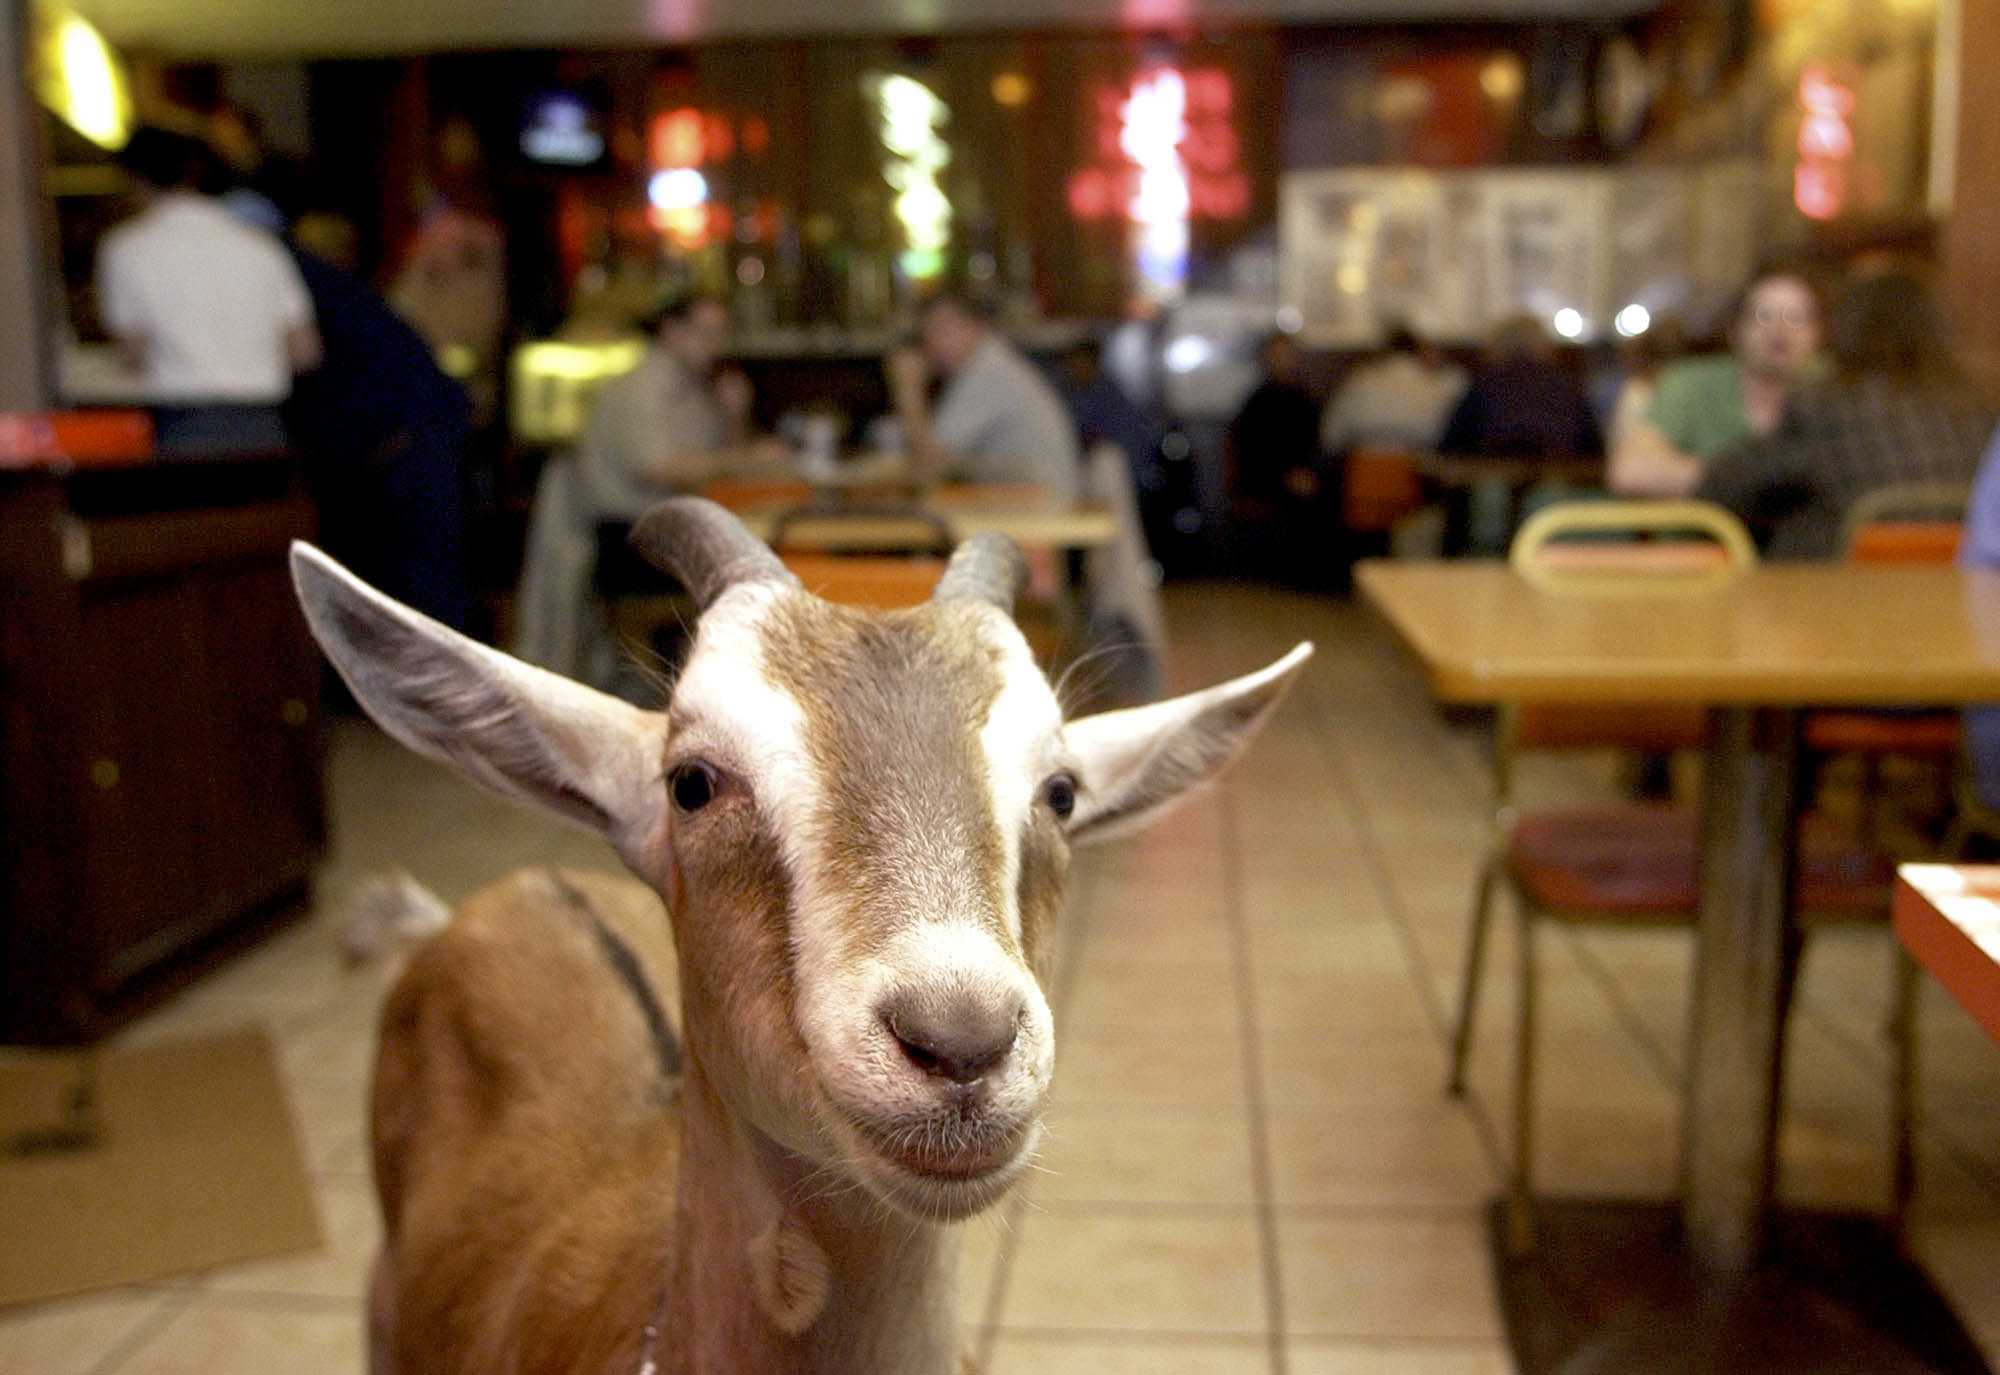 Billy Goat wanders around the Billy Goat Tavern in Chicago Thursday, Oct. 16, 2003. Many fans of the Chicago Cubs blame the curse of the Billy Goat for the team's 9-6 loss to the Florida Marlins in the final game of the NL Championship series.(AP Photo/Steve Matteo) ORG XMIT: CXSM102